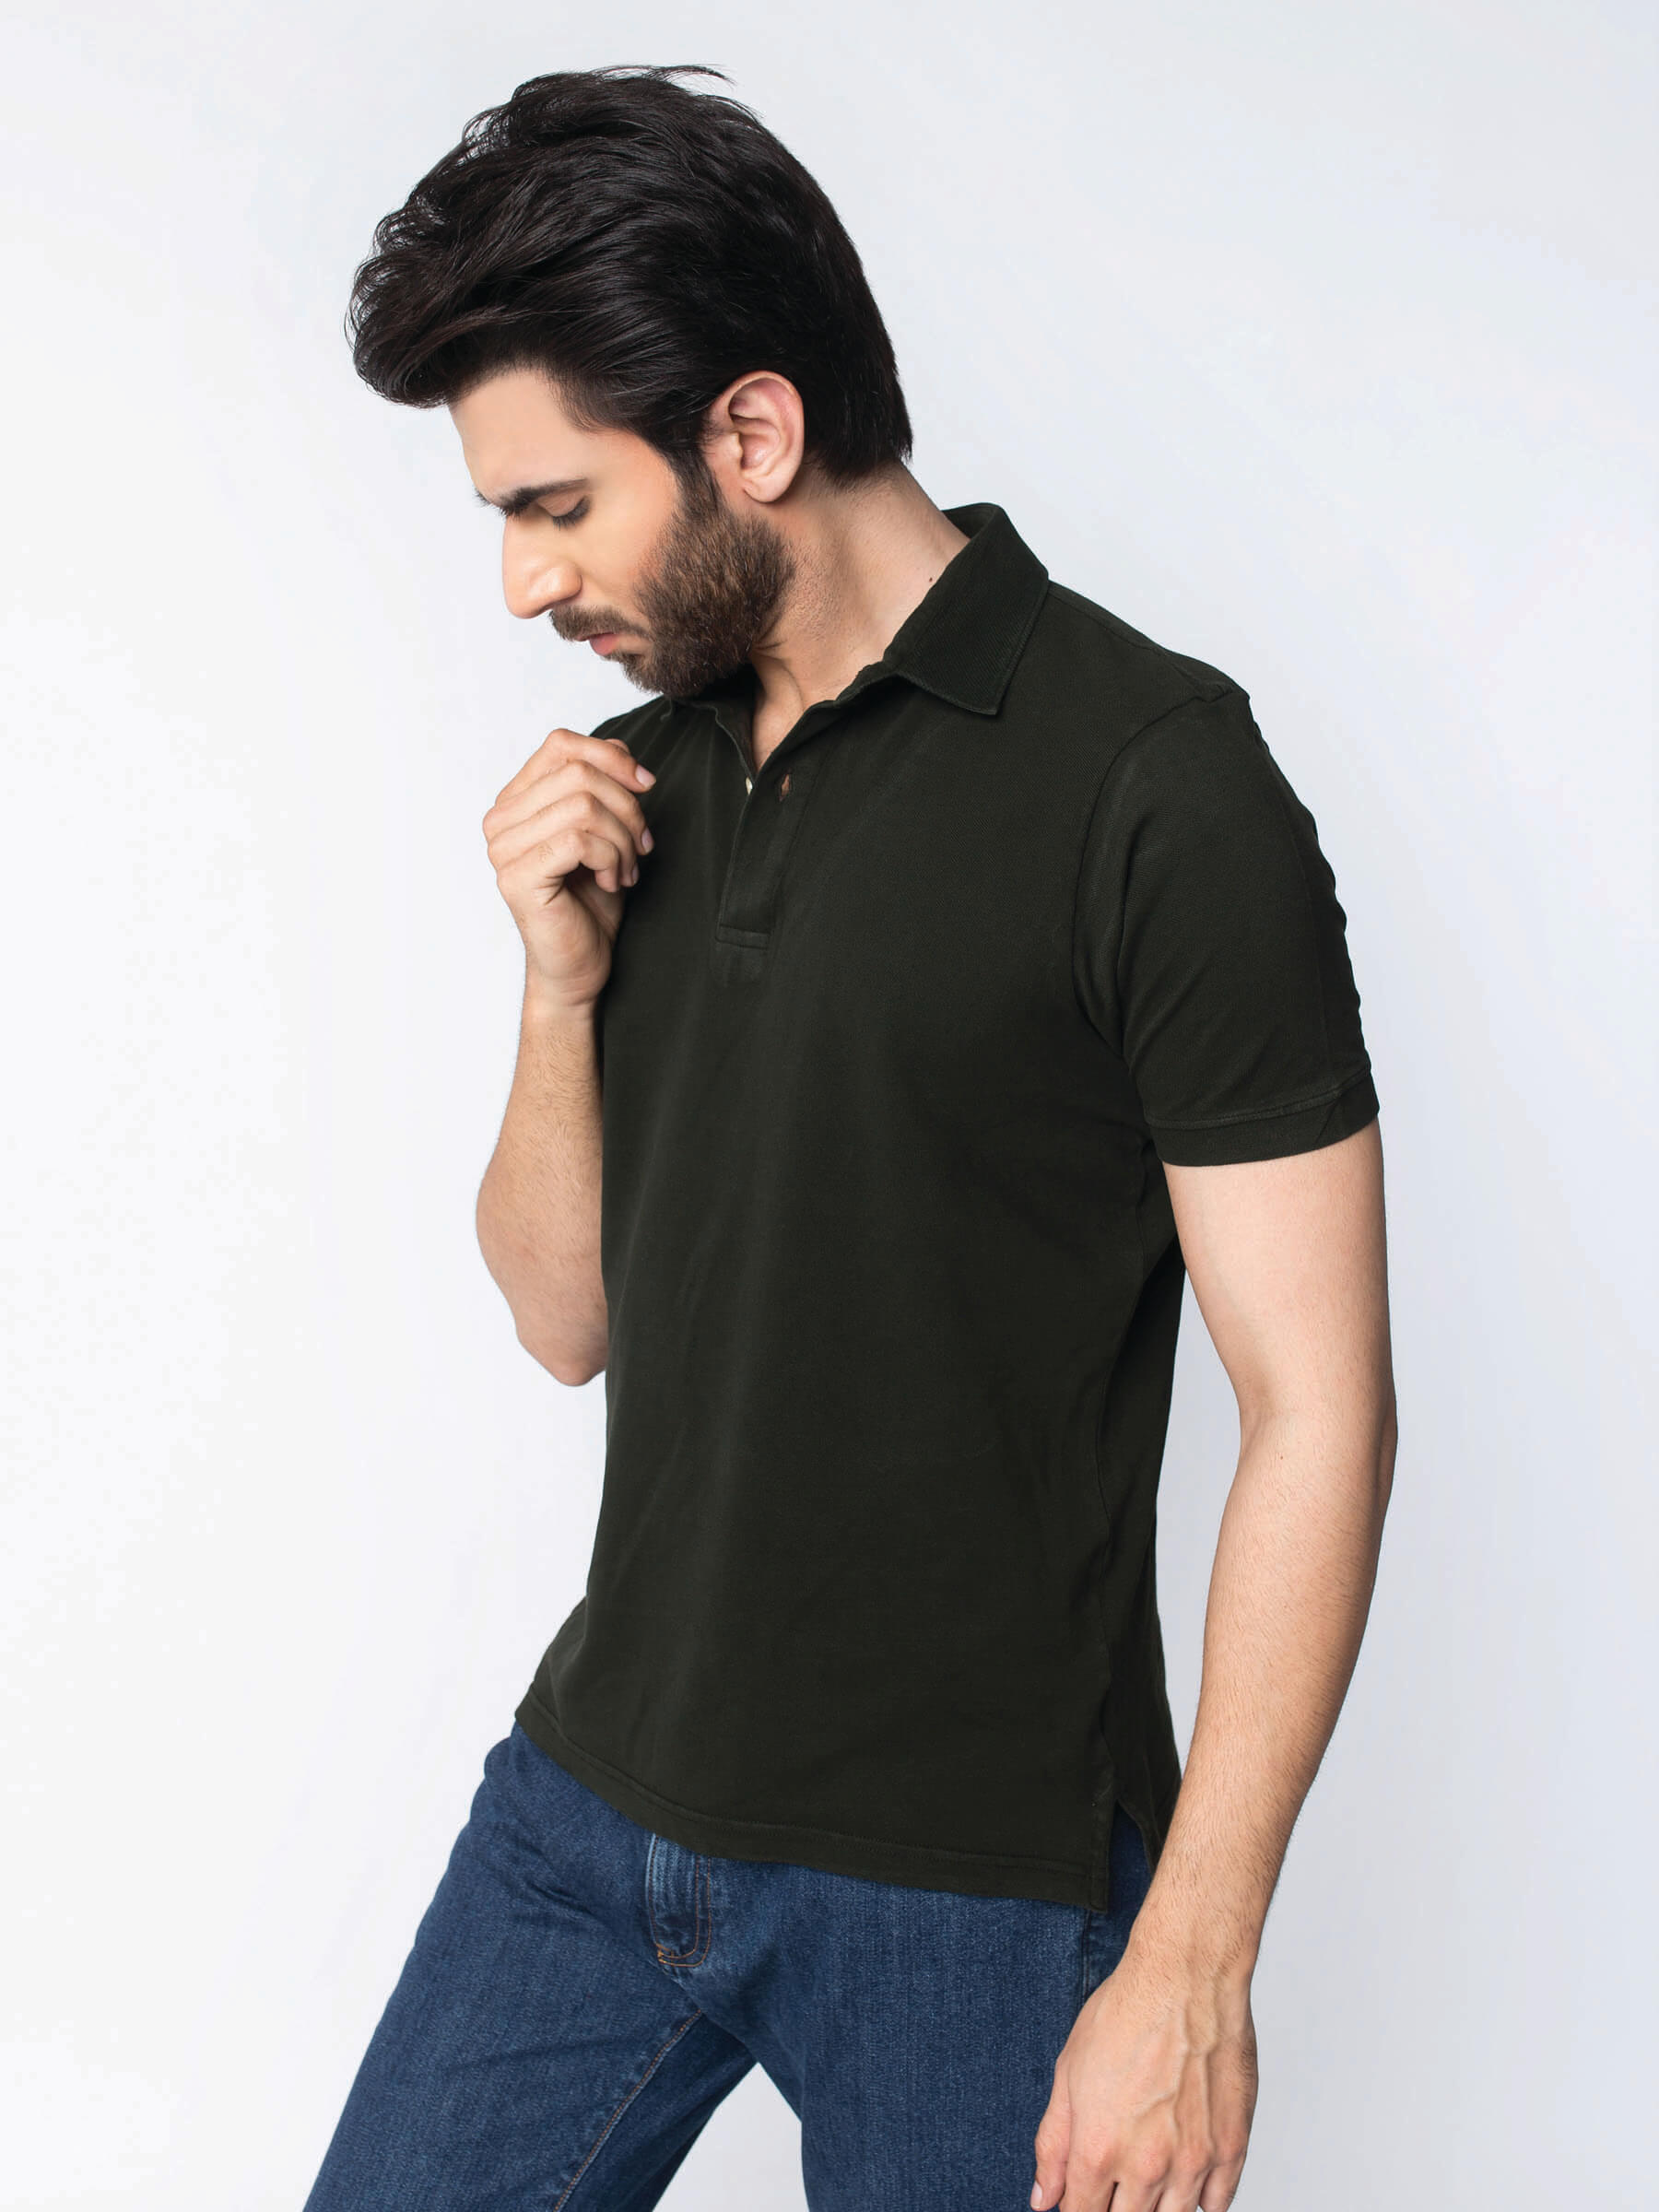 c35f12a2 Olive Green Pique Polo-2. Posted on 05/31/2018 Full size ...